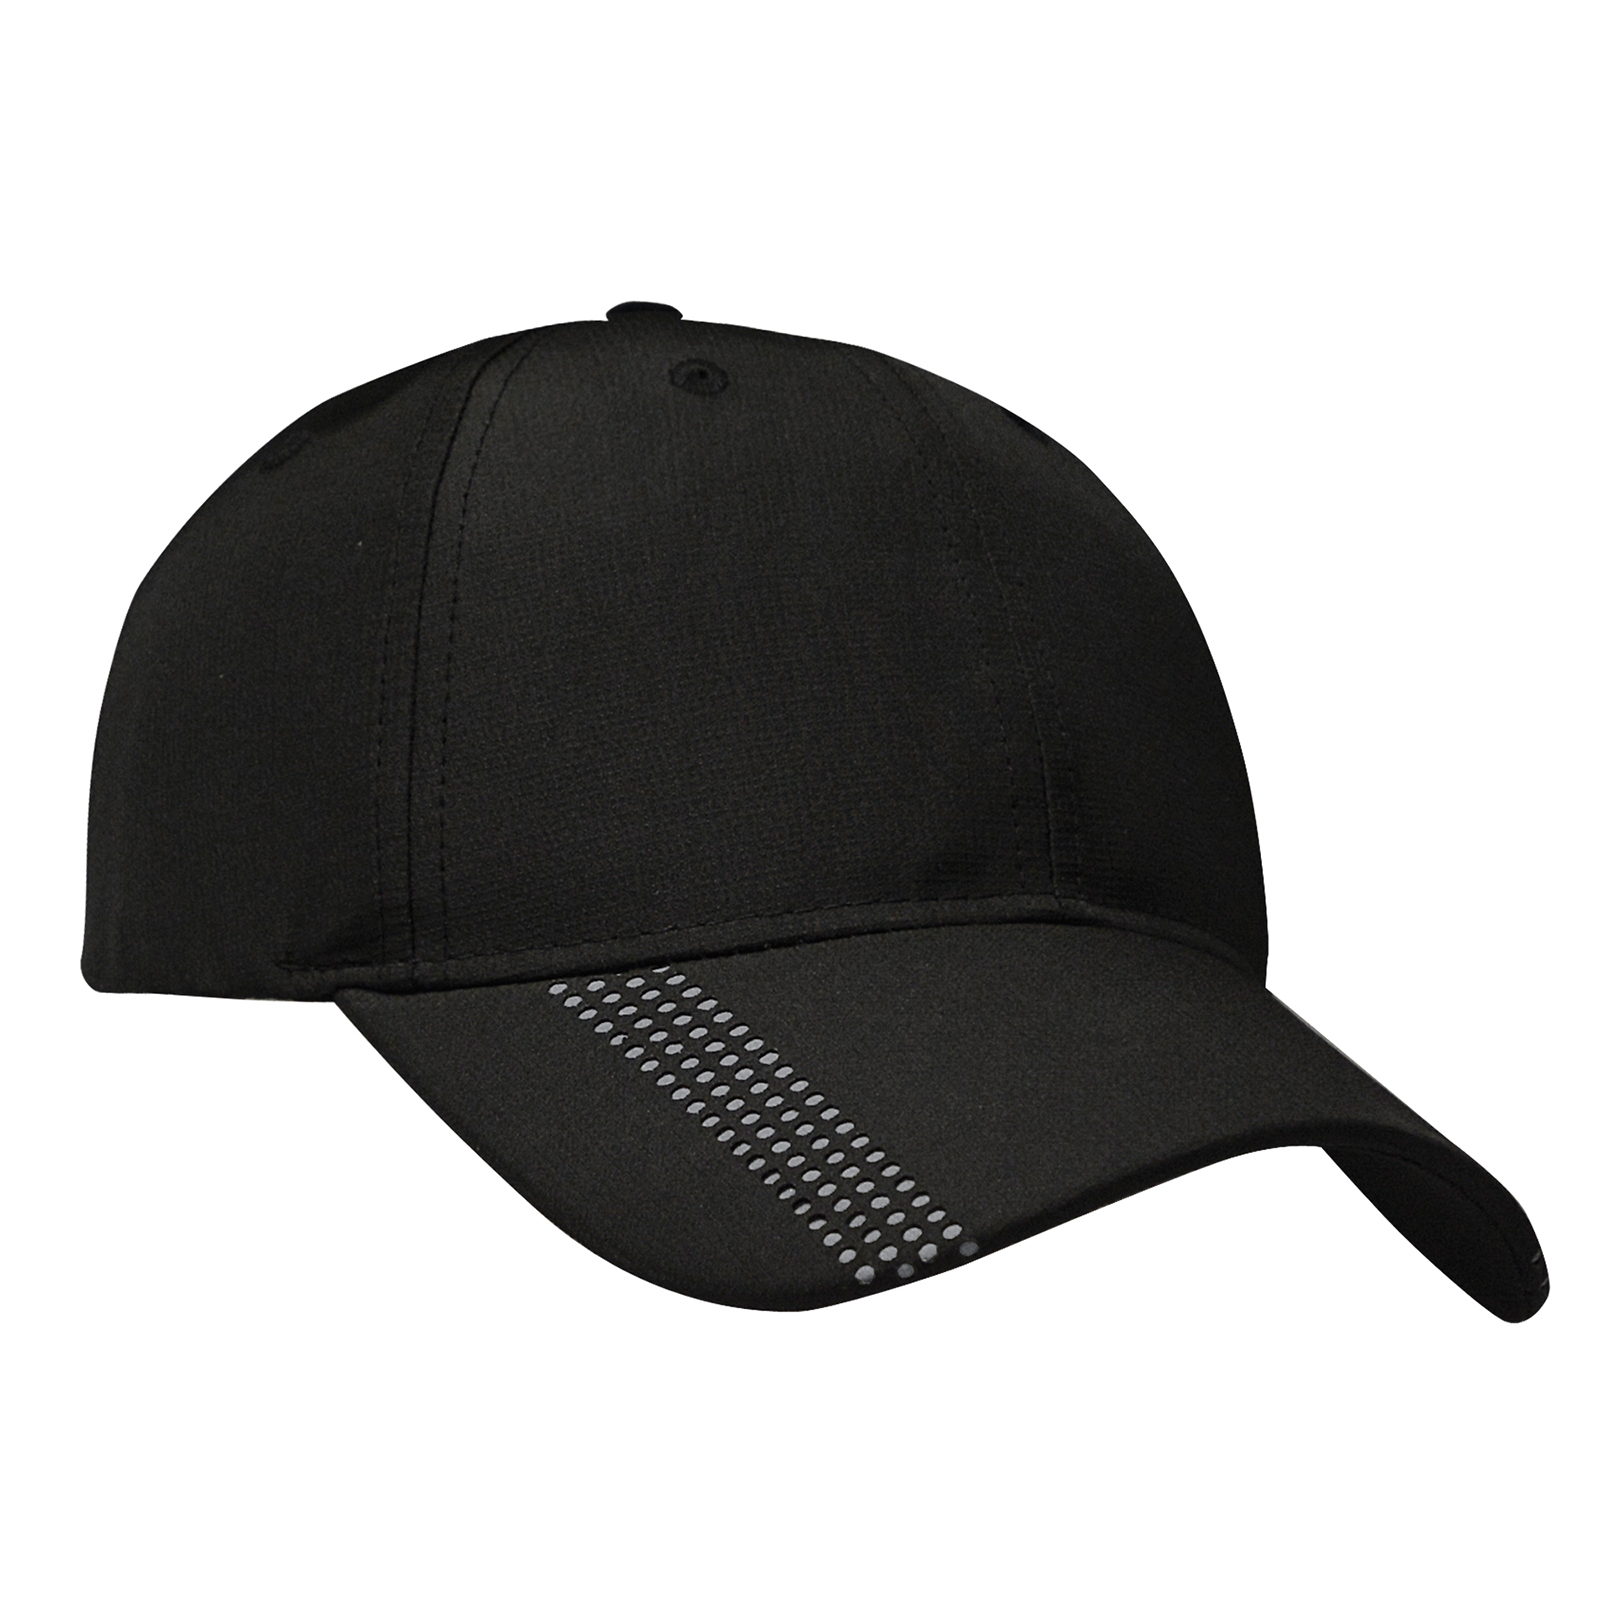 2c29e6acbdd5d2 Ferst-dry™ Moisture Wicking Pearl Nylon Cap with Laser Perforations on Peak